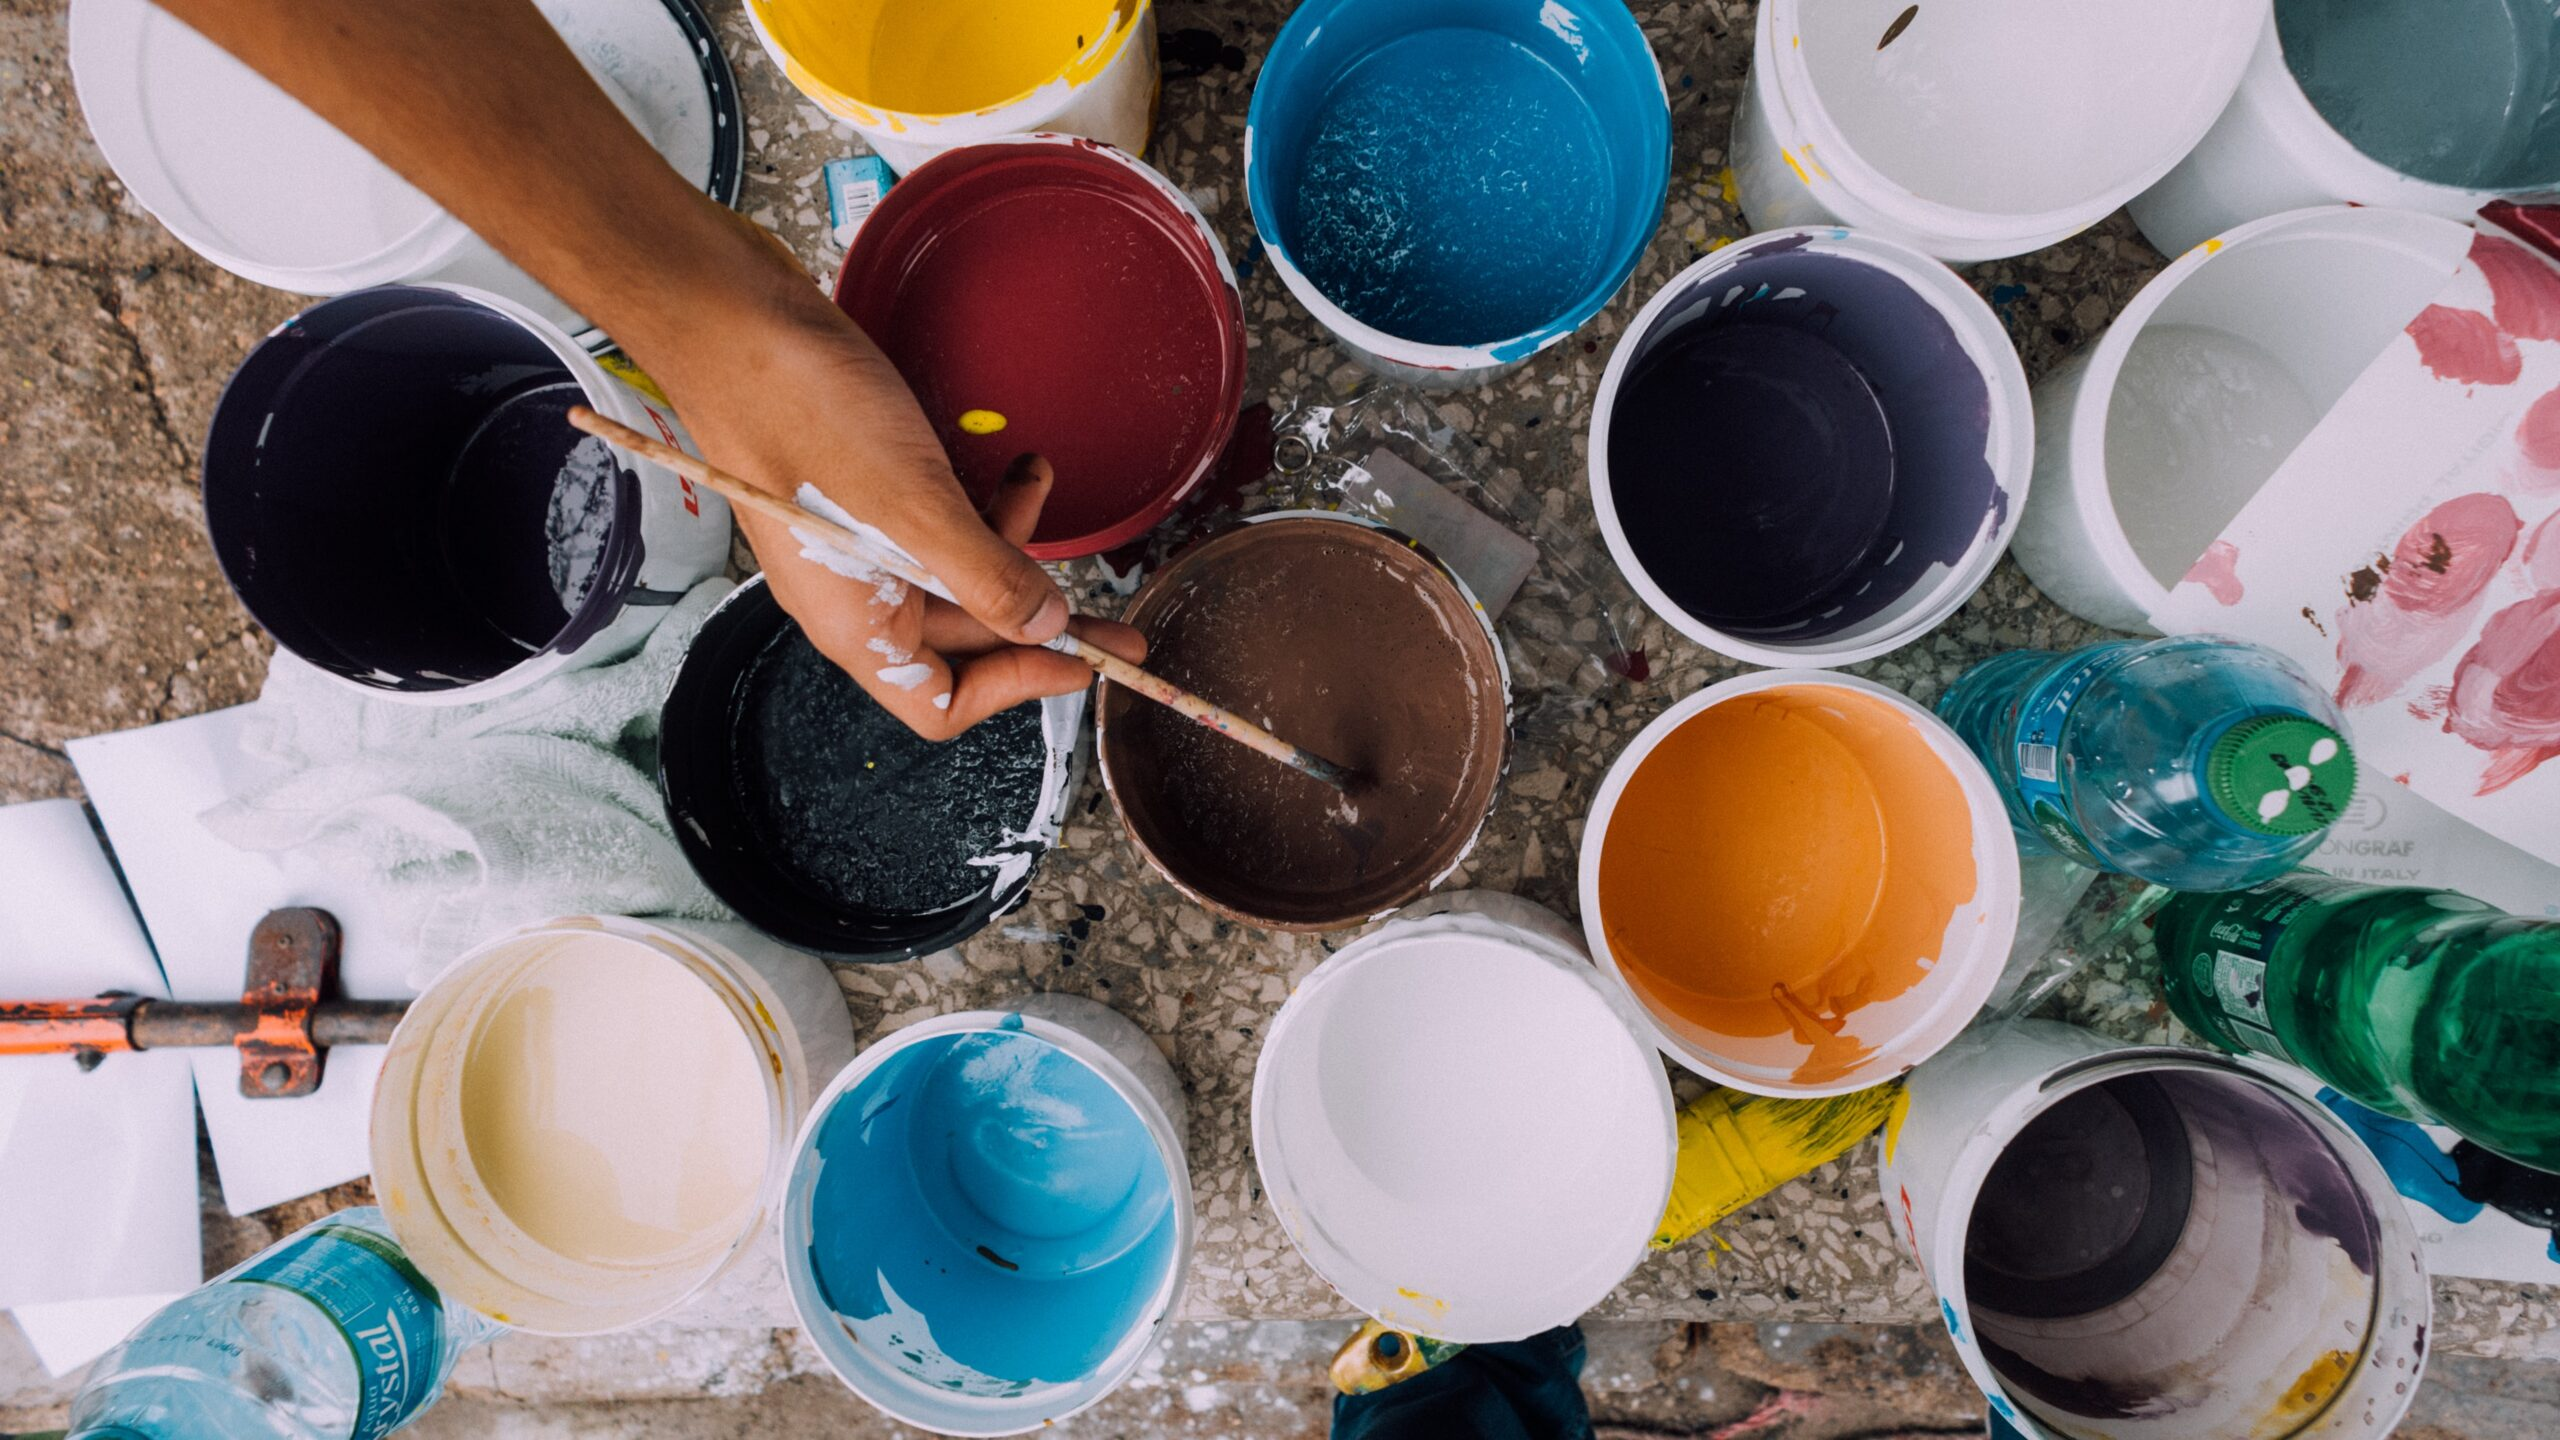 how long to stir paint